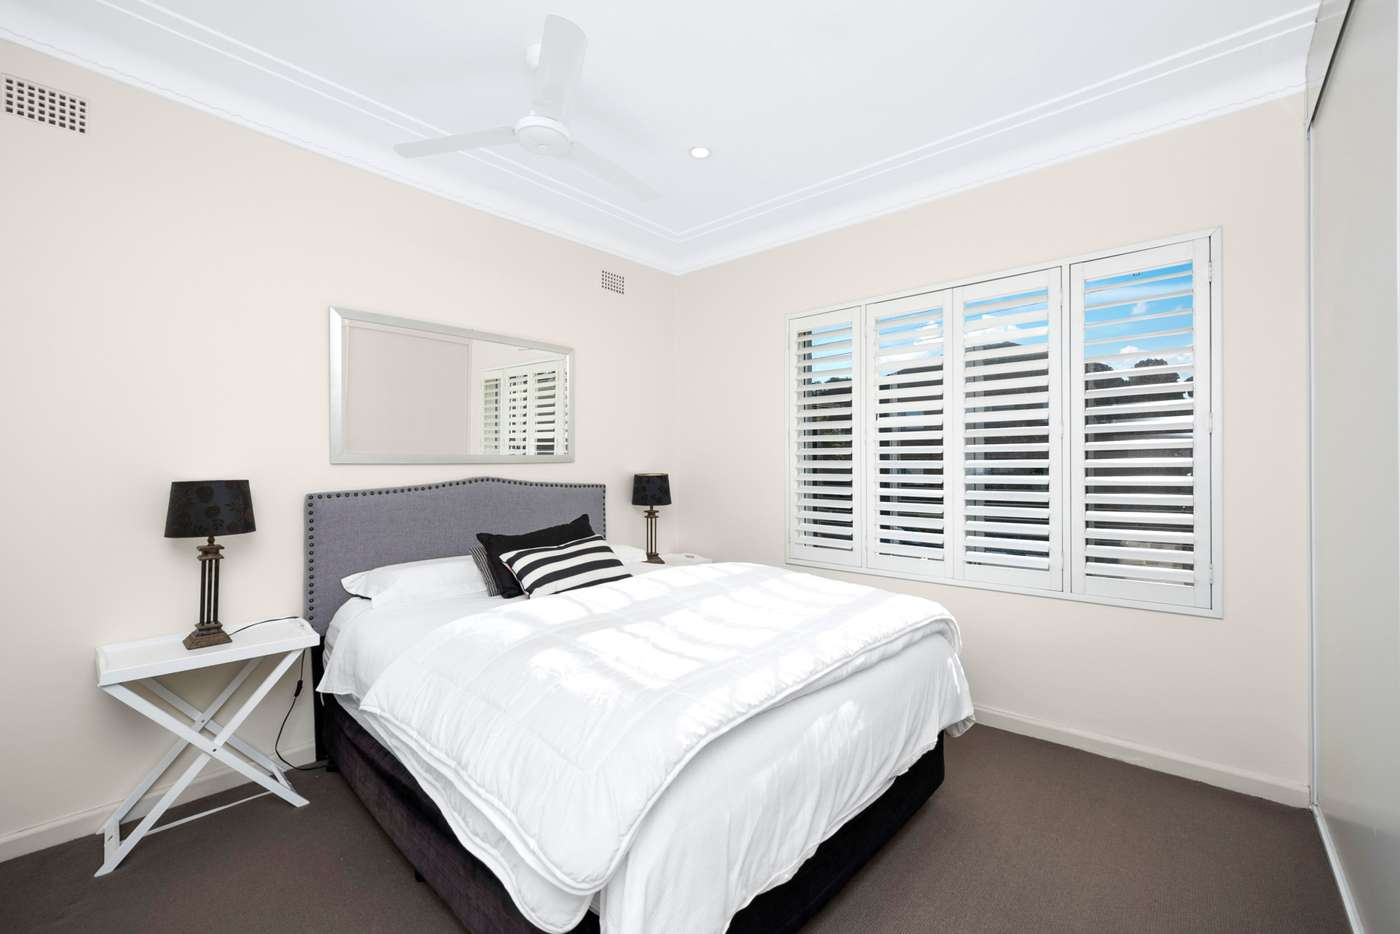 Fifth view of Homely apartment listing, 4/25 Churchill Crescent, Cammeray NSW 2062